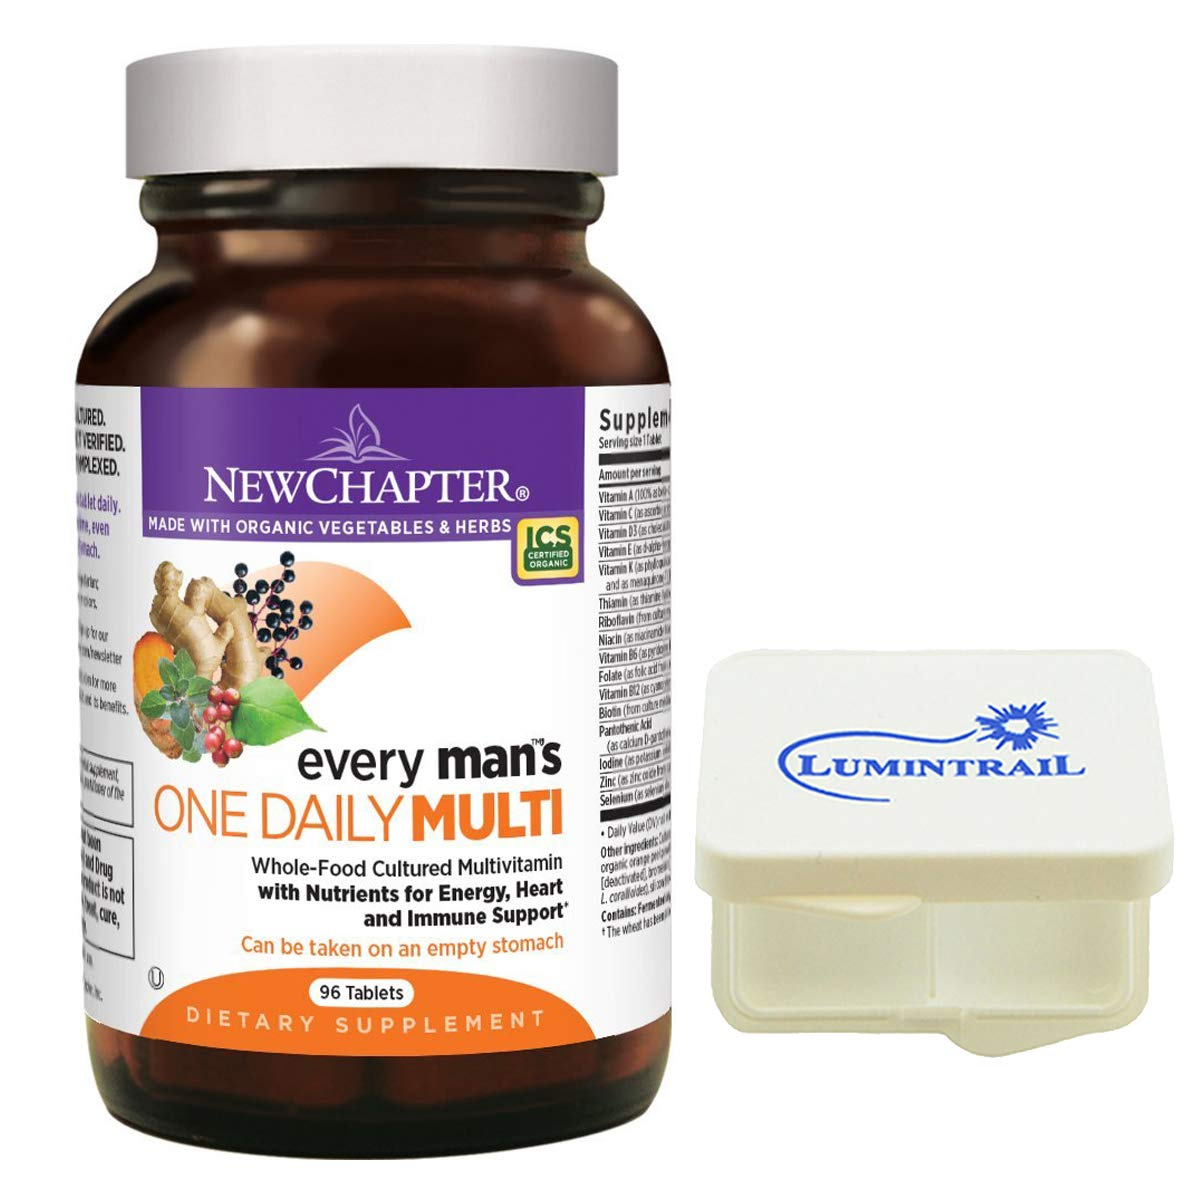 New Chapter Every Man's One Daily, Mens Multivitamin with Probiotics, Vitamin D3, Non-GMO - 96 Tablets Bundle with a Lumintrail Pill Case